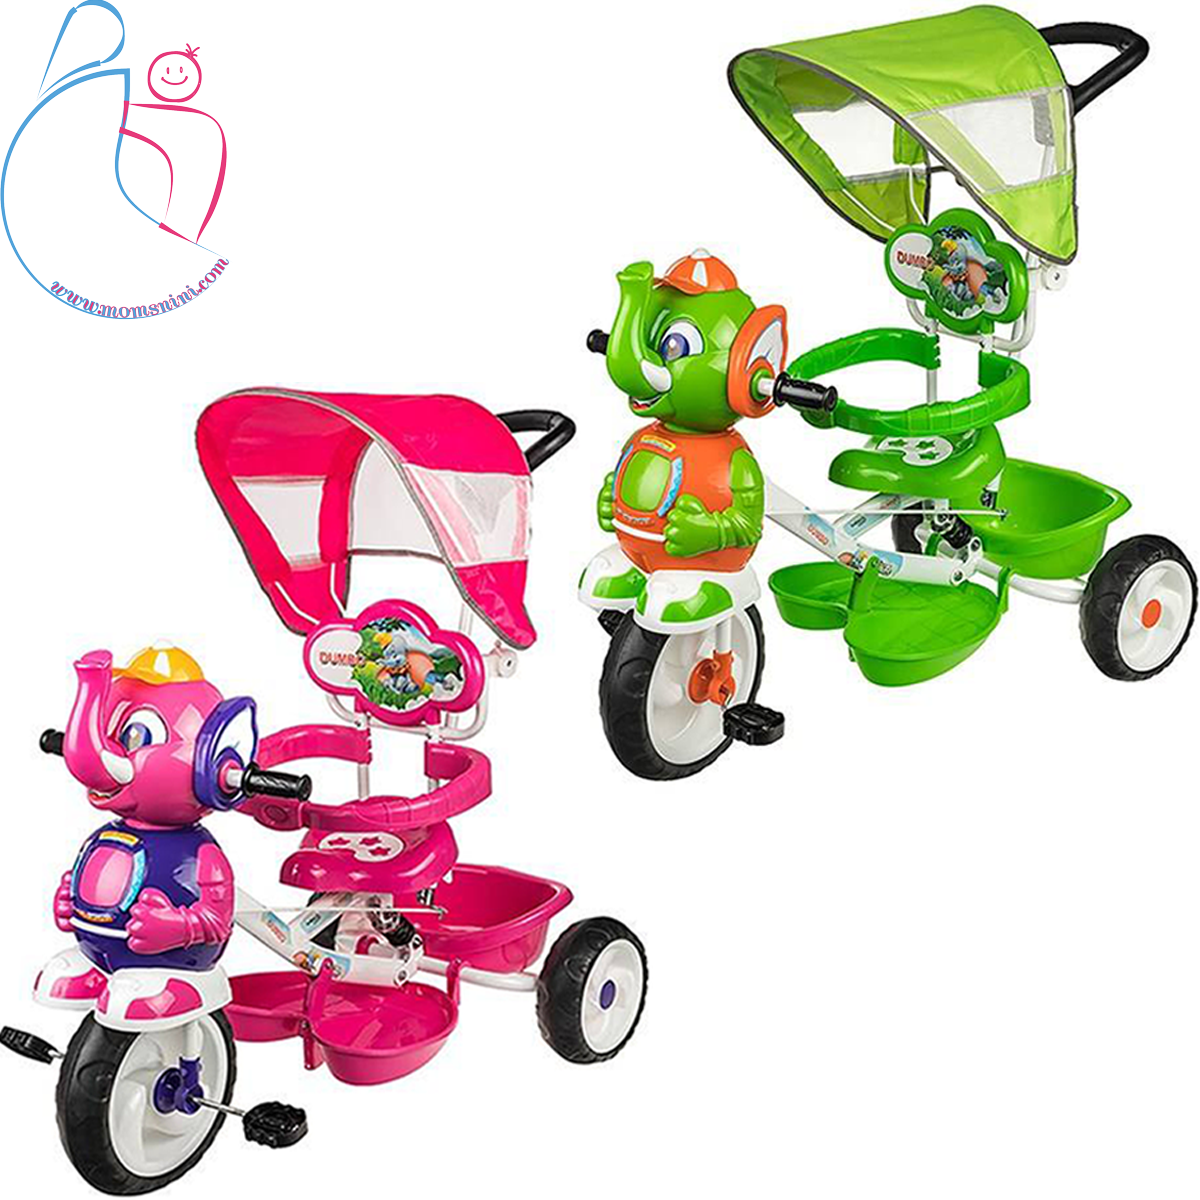 سه چرخه بیبی لند مدل ElephentBaby Land Elephent Tricycle